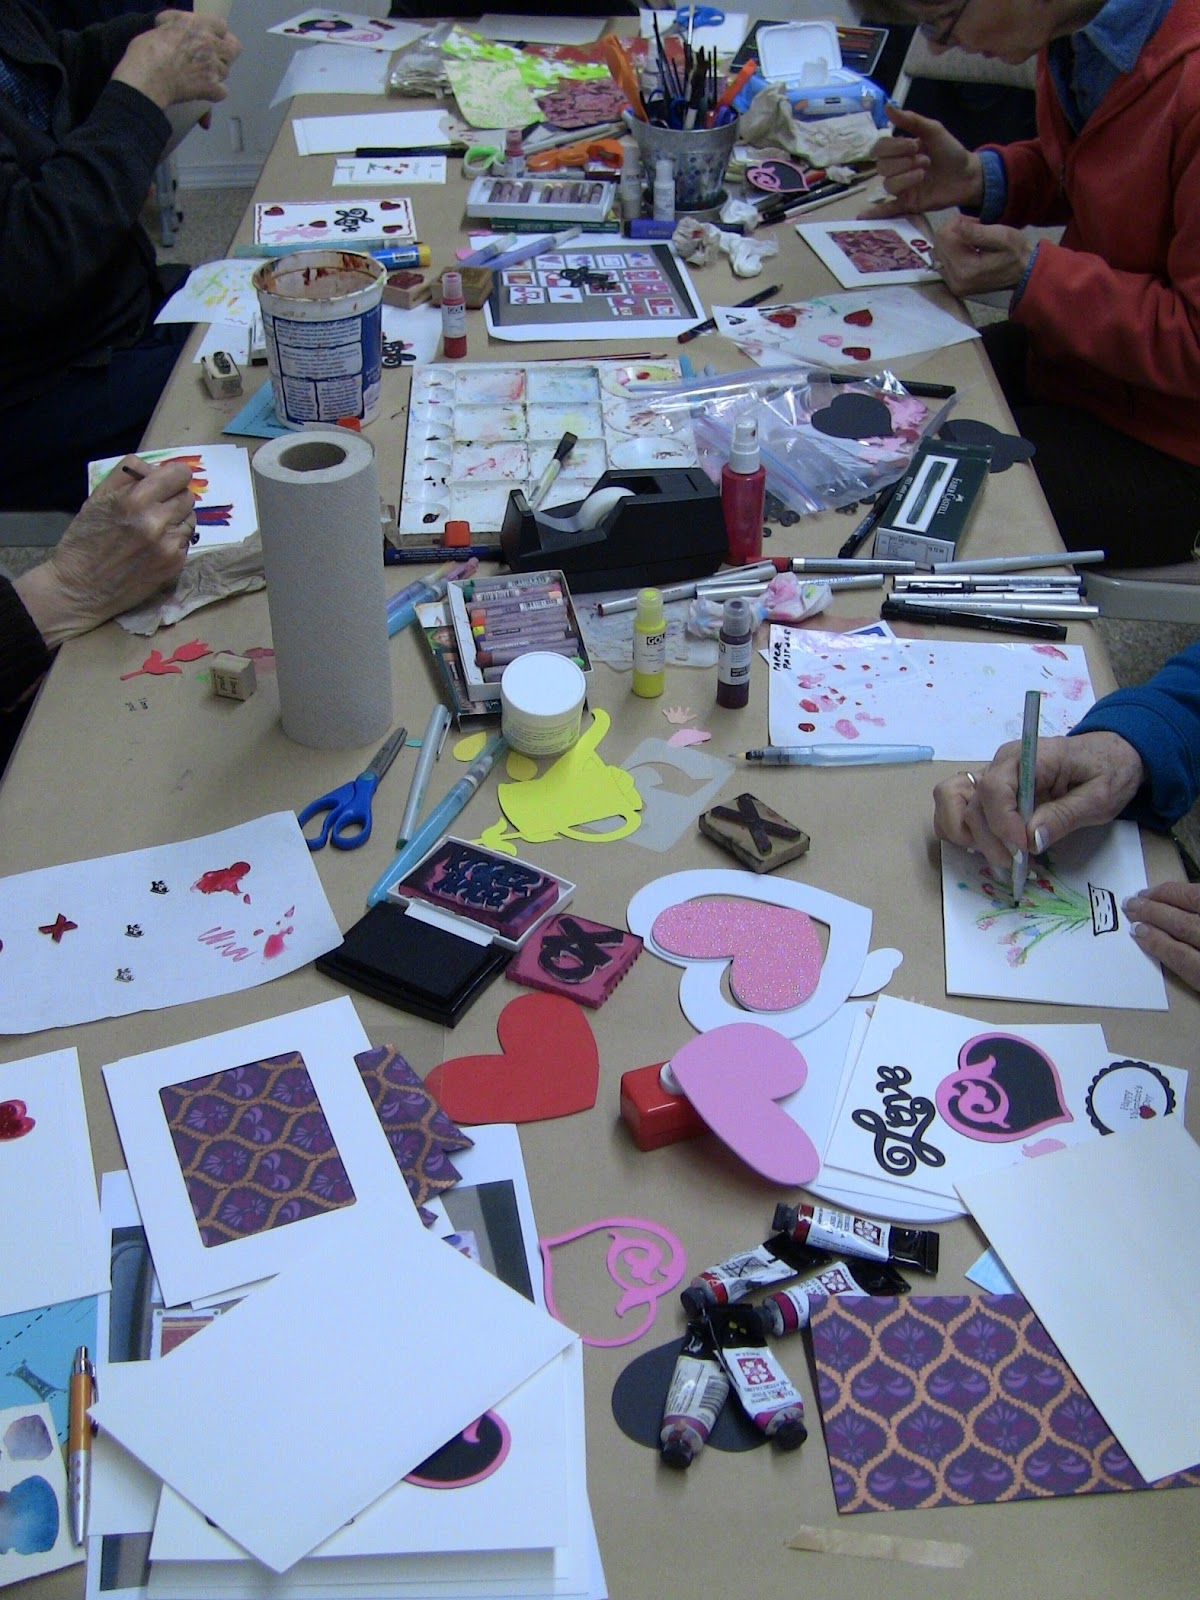 Daniel smith bellevue art store events strathmore cards hands on its time to start creating your holiday greeting cards join strathmore artist papers senior account manager kari foteff for this hands on card making kristyandbryce Choice Image